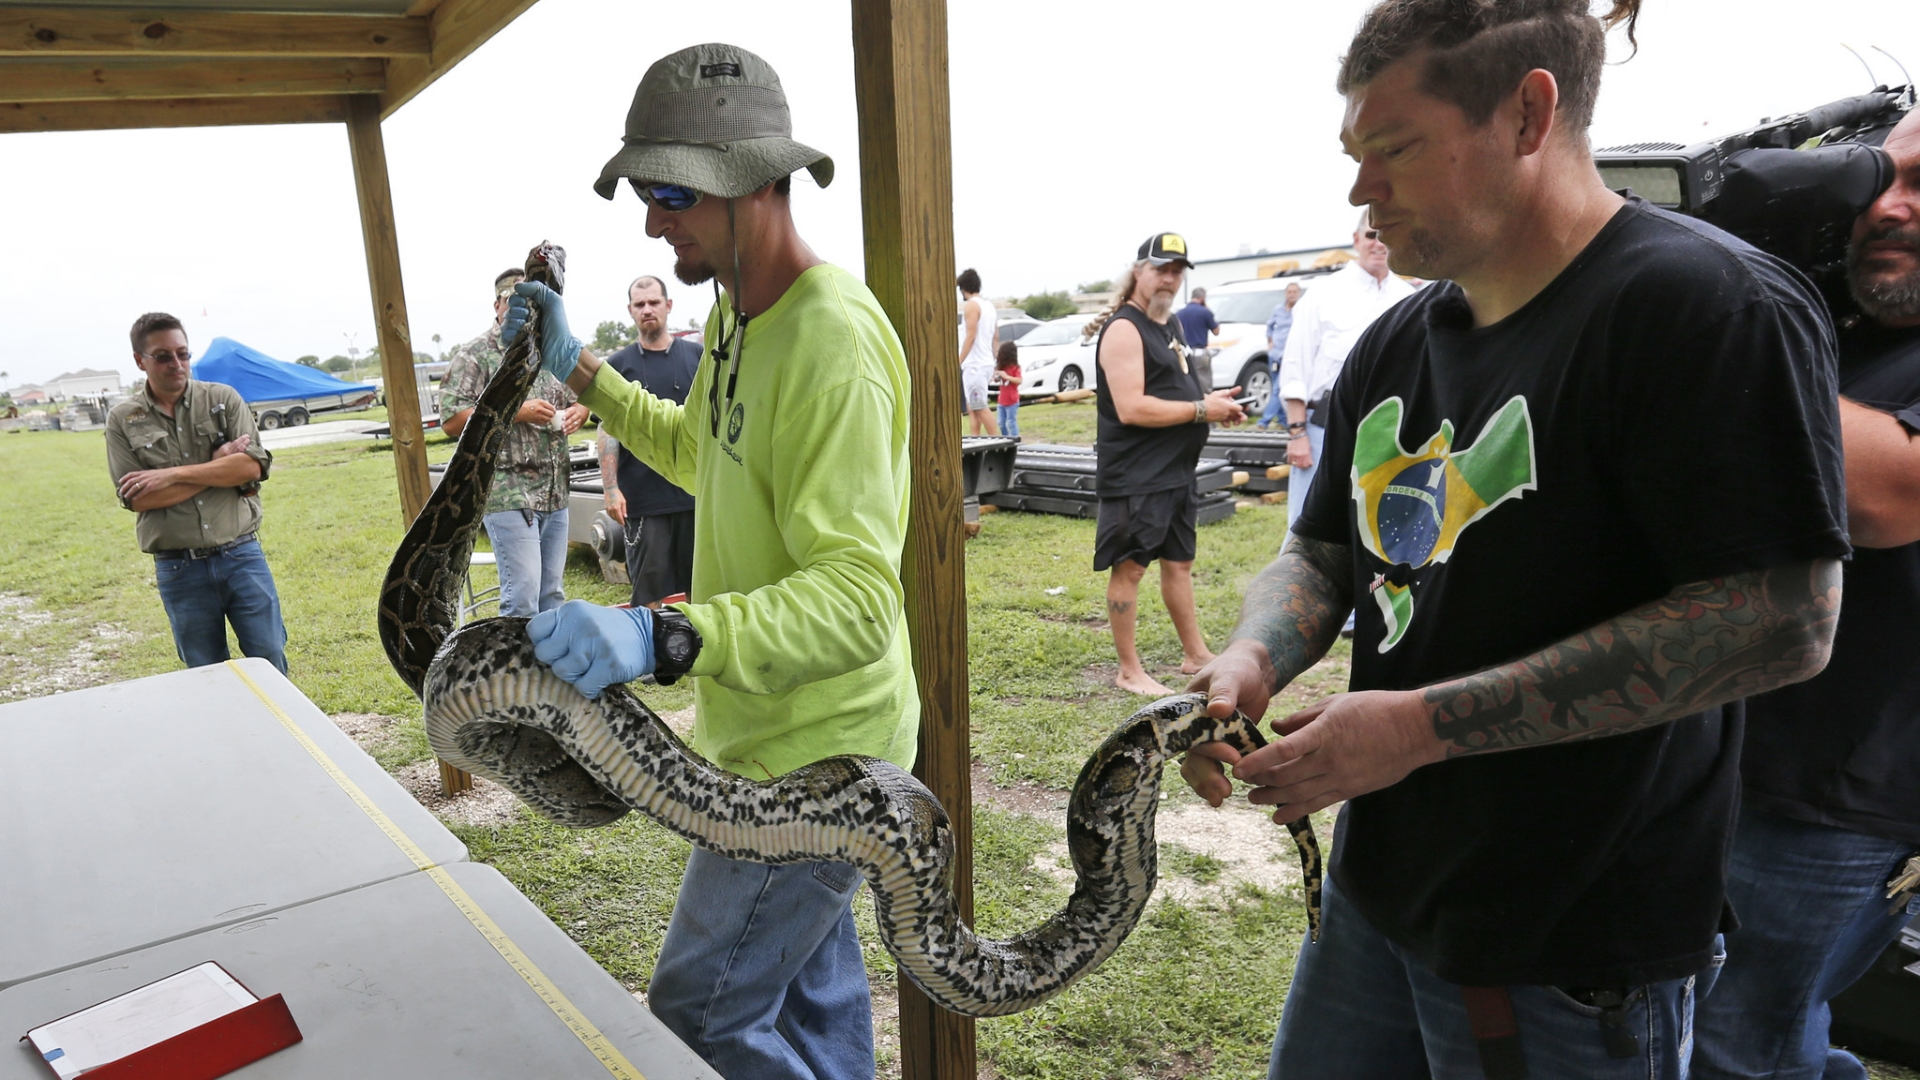 Hunters with shotguns to go after pythons in Everglades